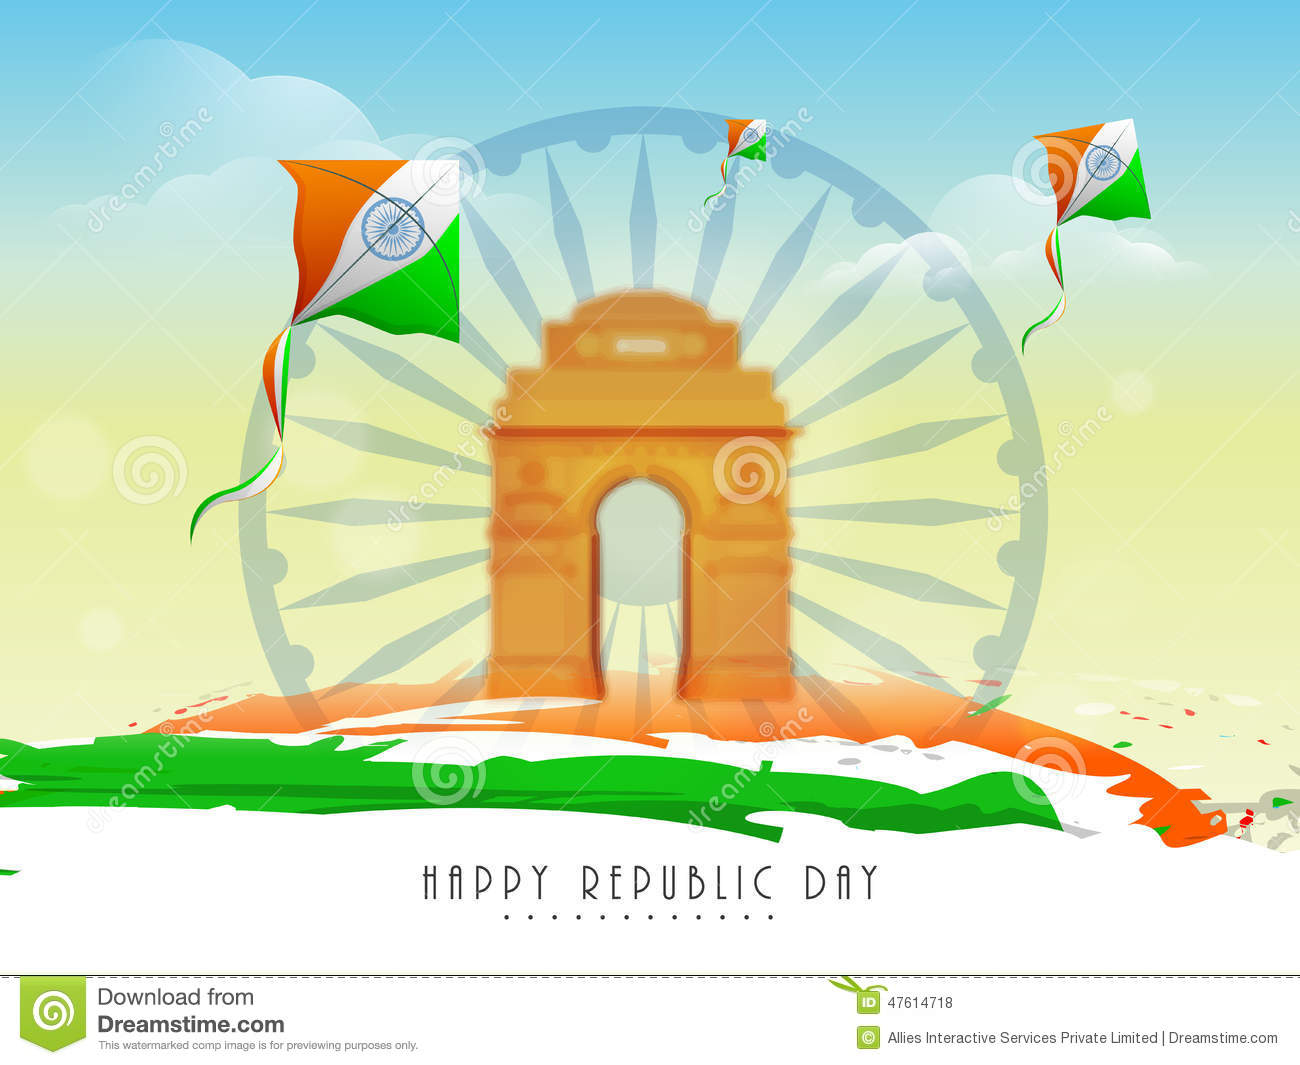 Indian Flag With Different Views: Ashoka Wheel, India Gate And Kites For Indian Republic Day